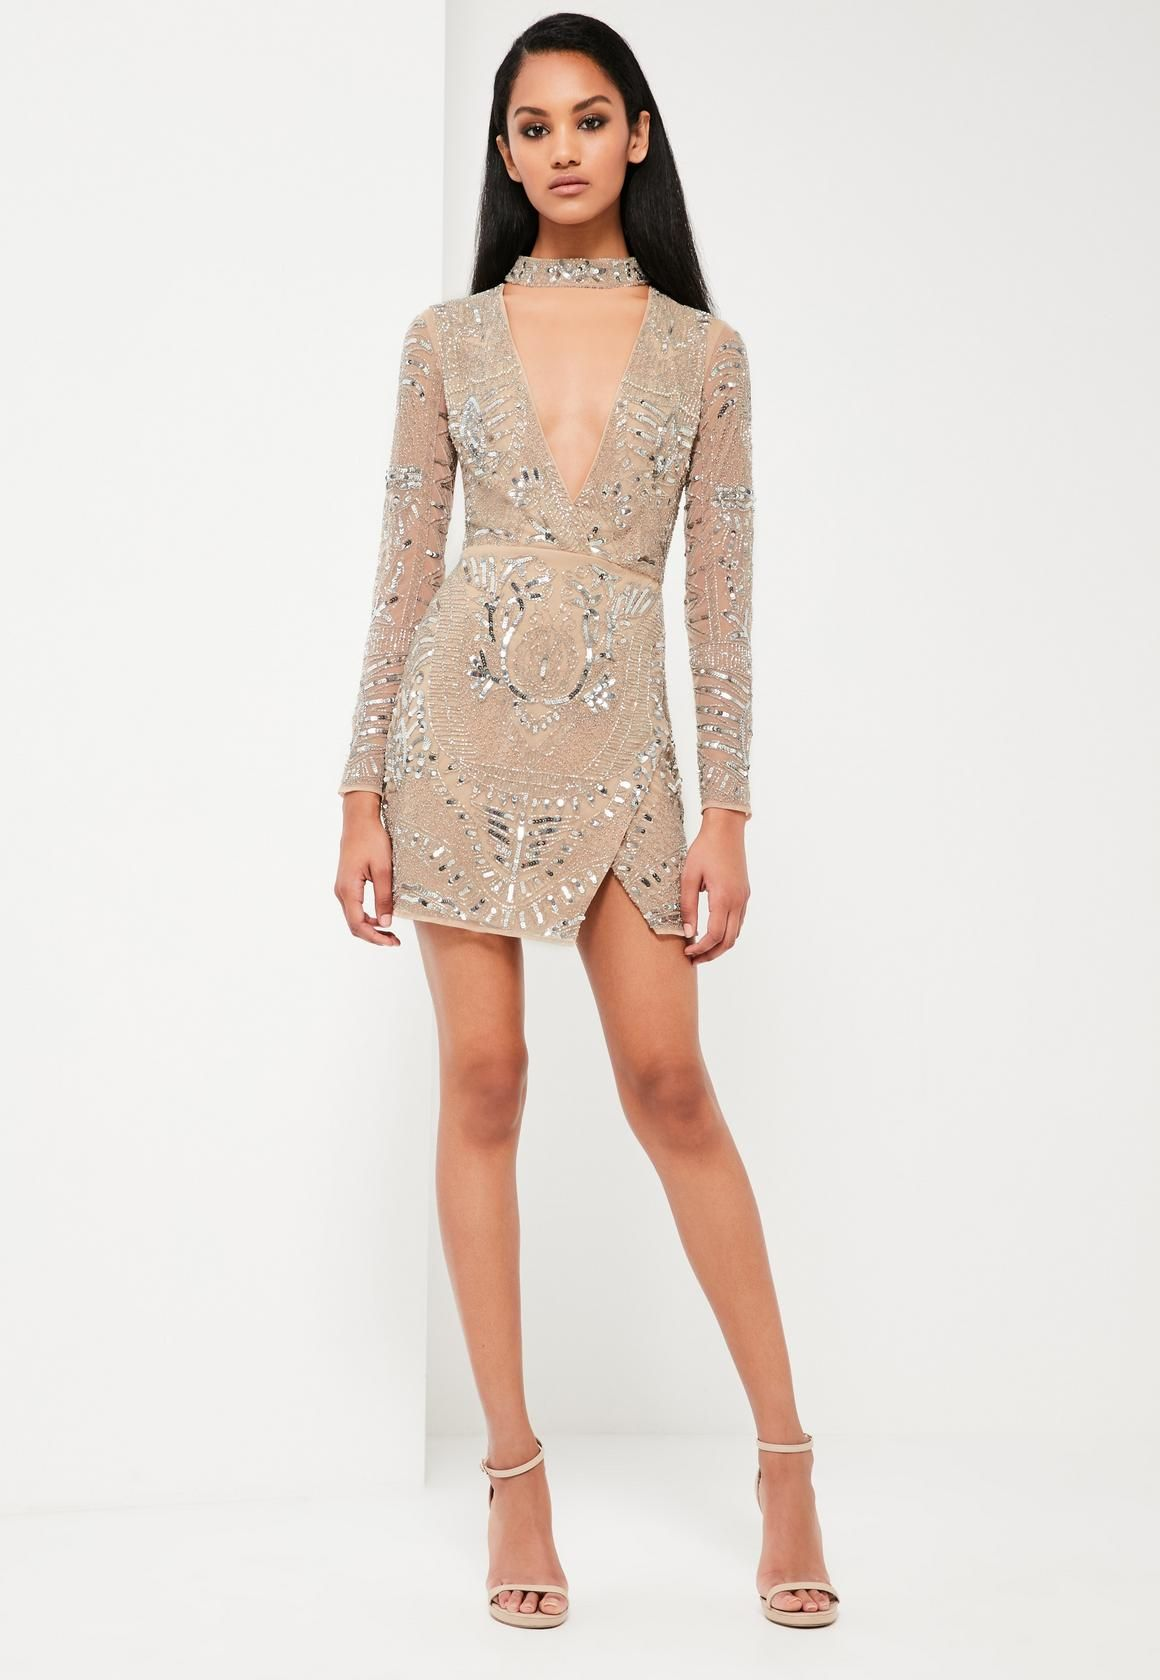 Peace Love Silver Choker Neck Embellished Dress - Silver Missguided FQxKK